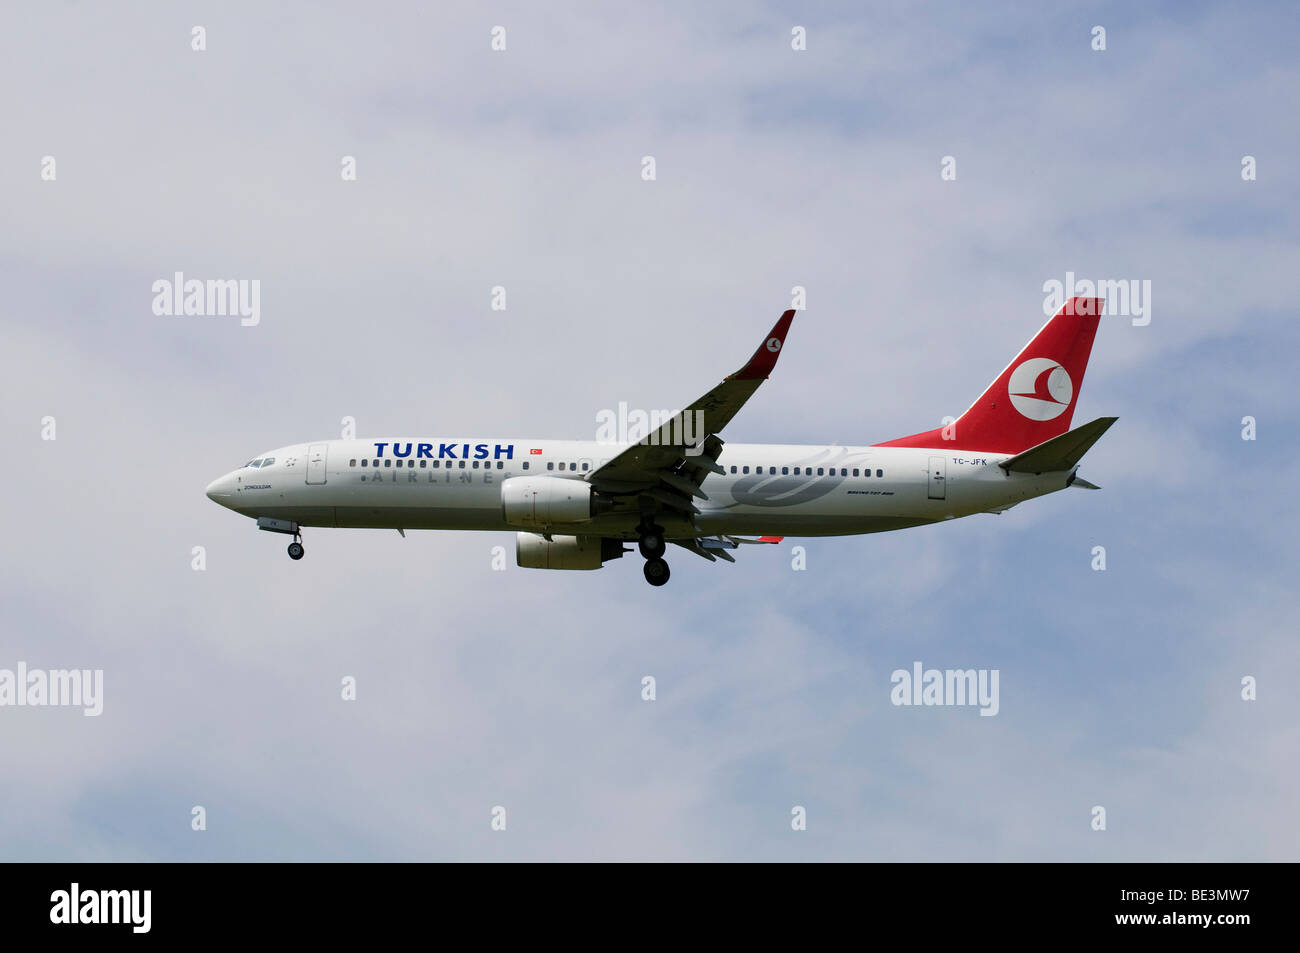 Aircraft with winglets, Turkish Airlines Boeing 737-800/8F2, ID: TC-JFK, partly Turkish state airline, Tuerk Hava - Stock Image